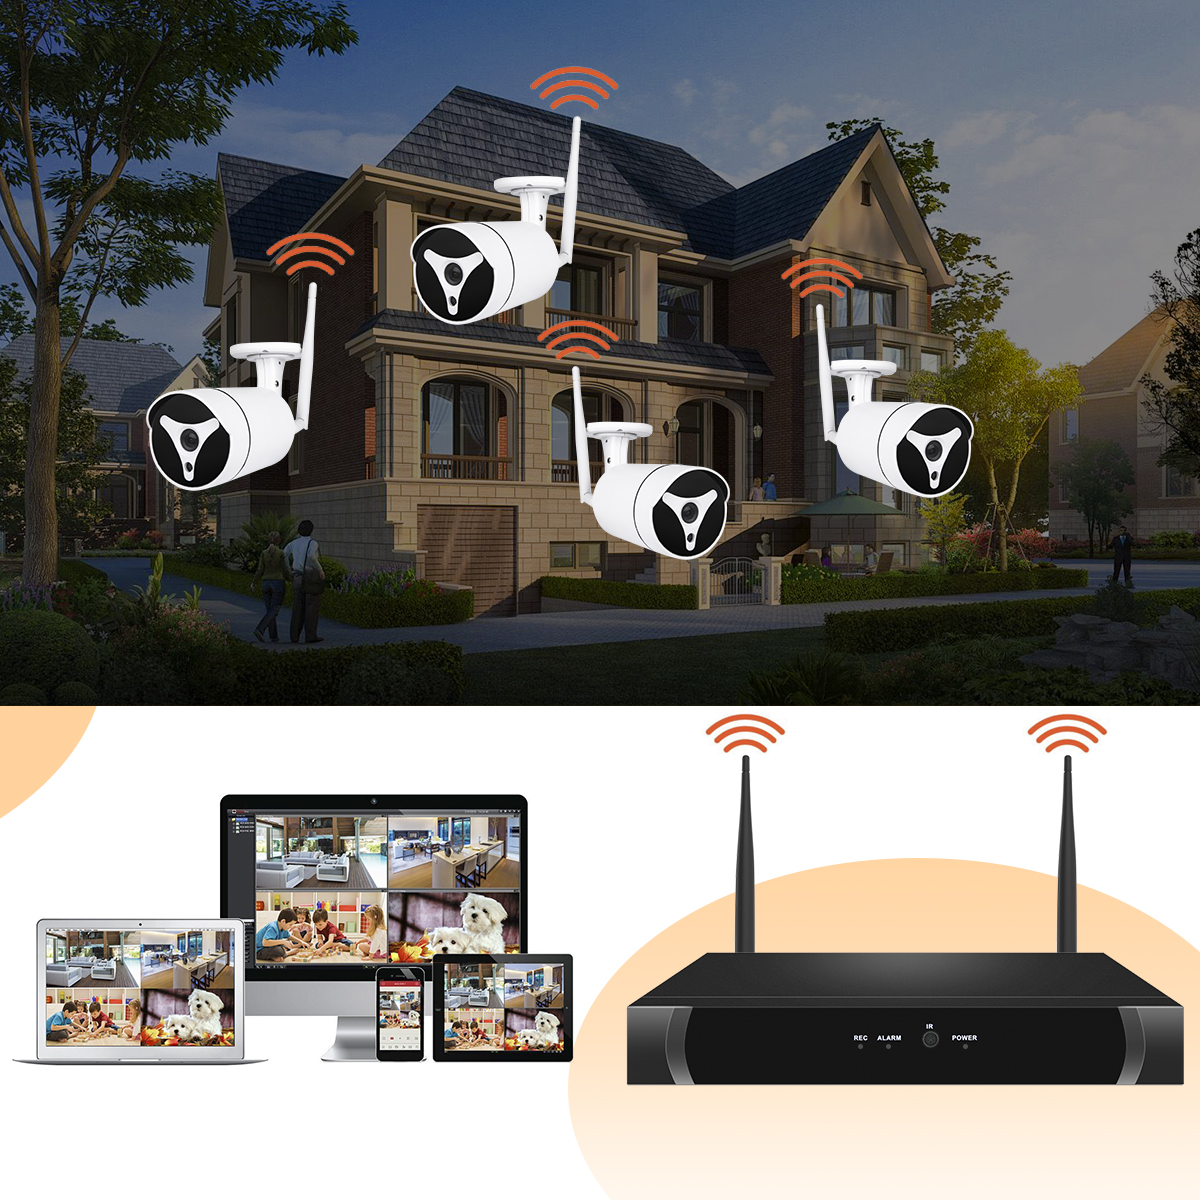 images/wholesale-electronics-2019/4-Channel-NVR-Security-Kit-6869-4-Wi-Fi-1080P-IP-Cameras-HD-Resolutions-30meters-Night-Vision-Remote-Monitoring-App-plusbuyer_4.jpg